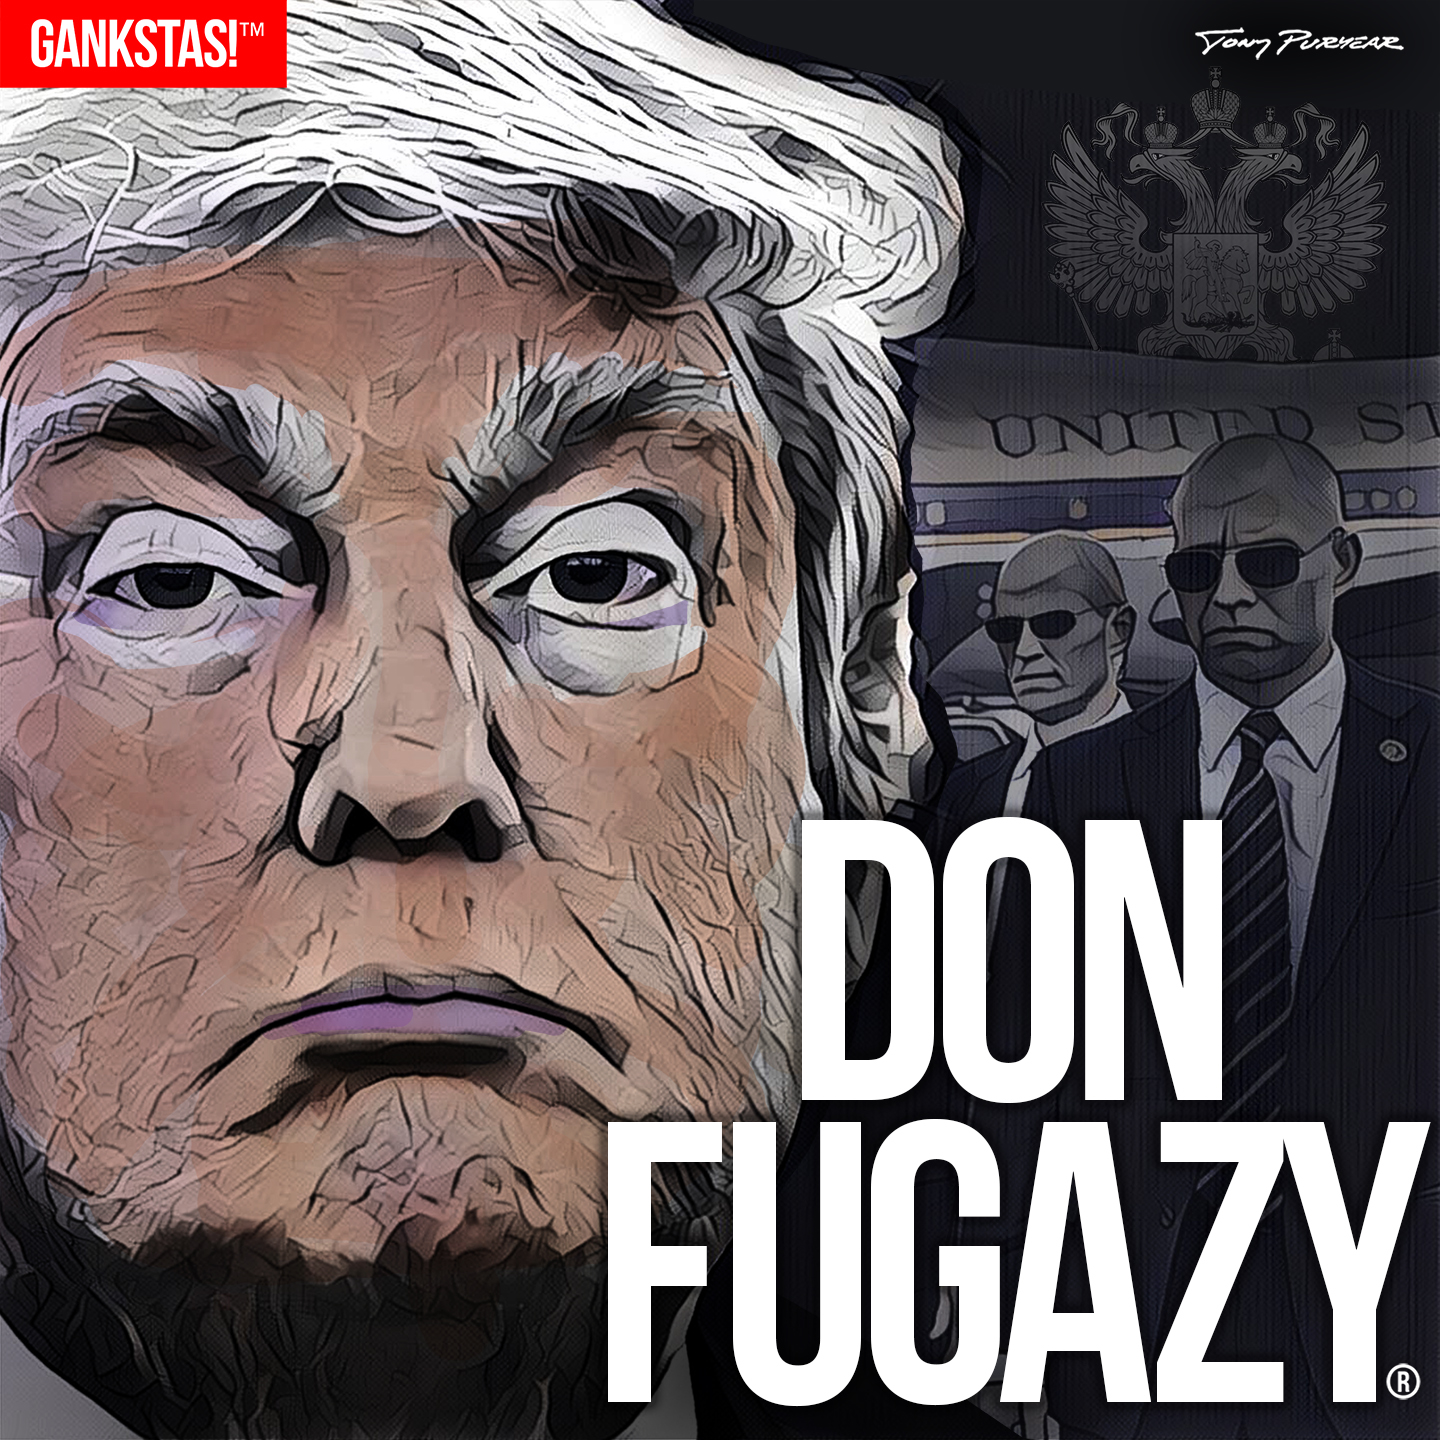 """"""" DON FUGAZY """" - 2017, digital print on acid-free paper, 14.5""""x14.5"""" - """" Fugazy """"  n. - a fake, something bogus, a counterfeit . The word, long a part of New York City slang, was popularized in the 1997 film """"Donnie Brasco"""" starring Johnny Depp and Al Pacino."""